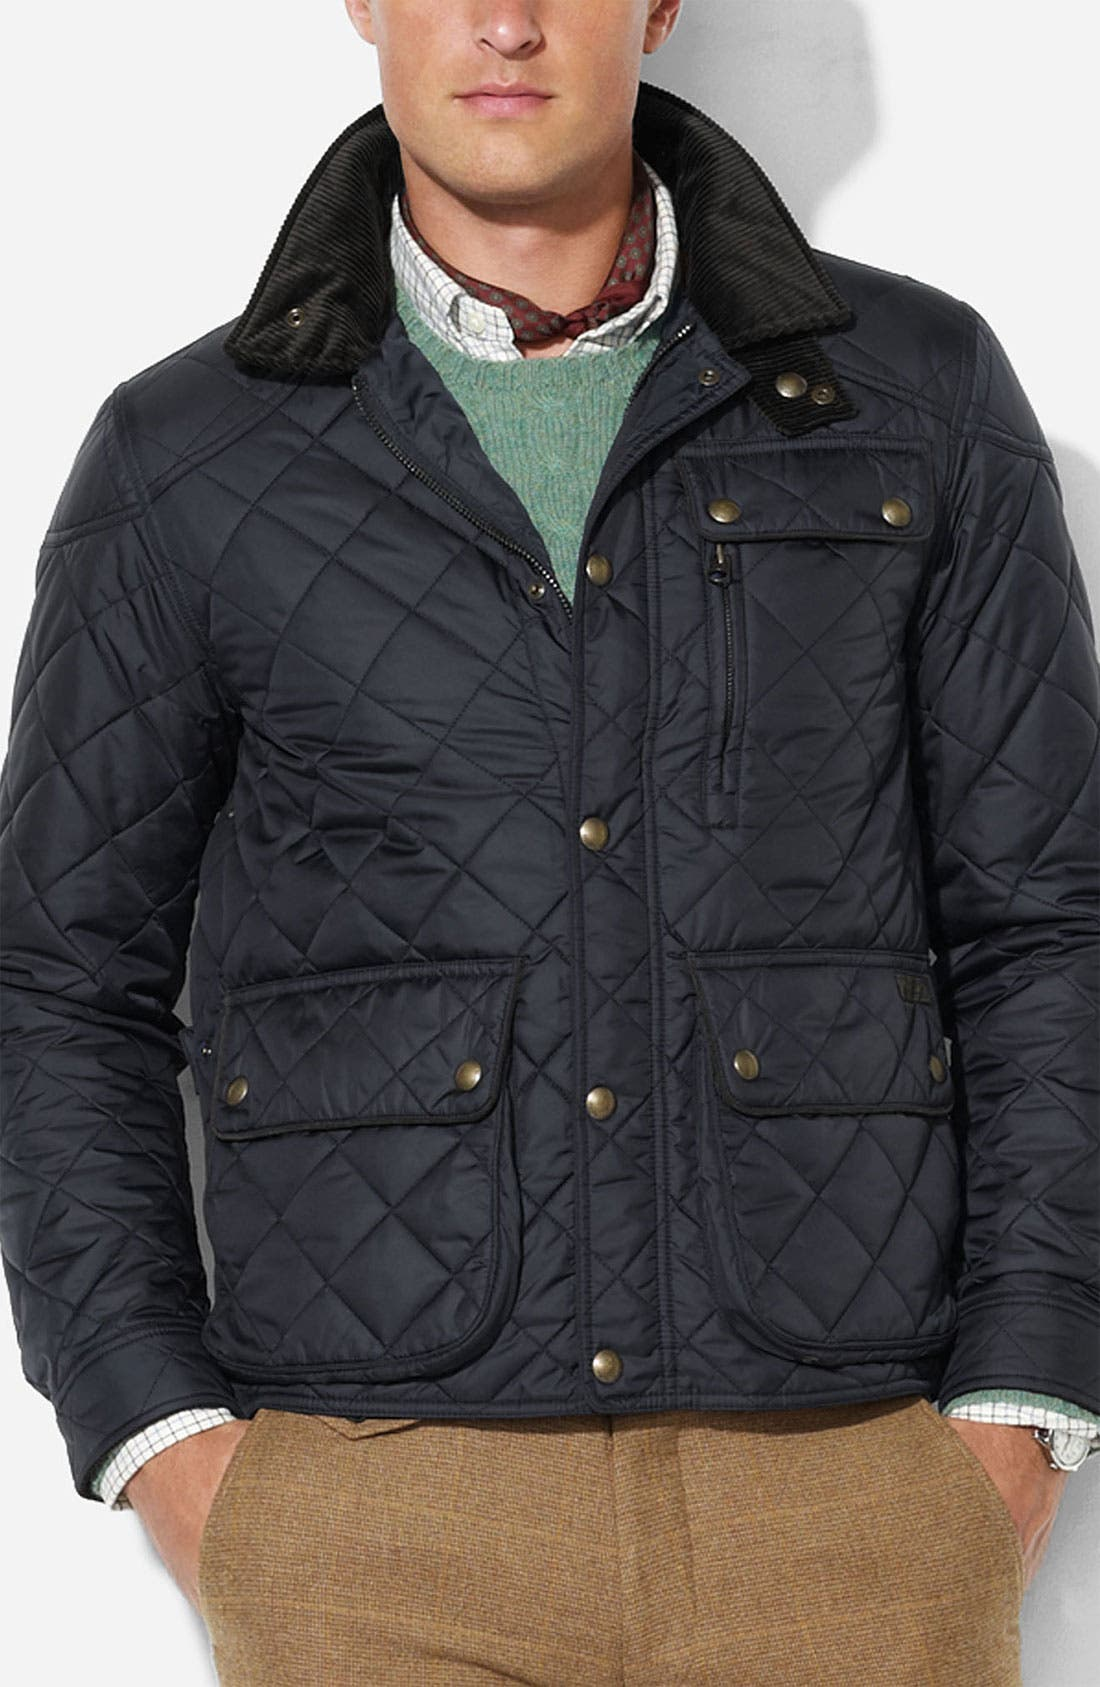 Alternate Image 1 Selected - Polo Ralph Lauren 'Cadwell' Classic Fit Quilted Bomber Jacket